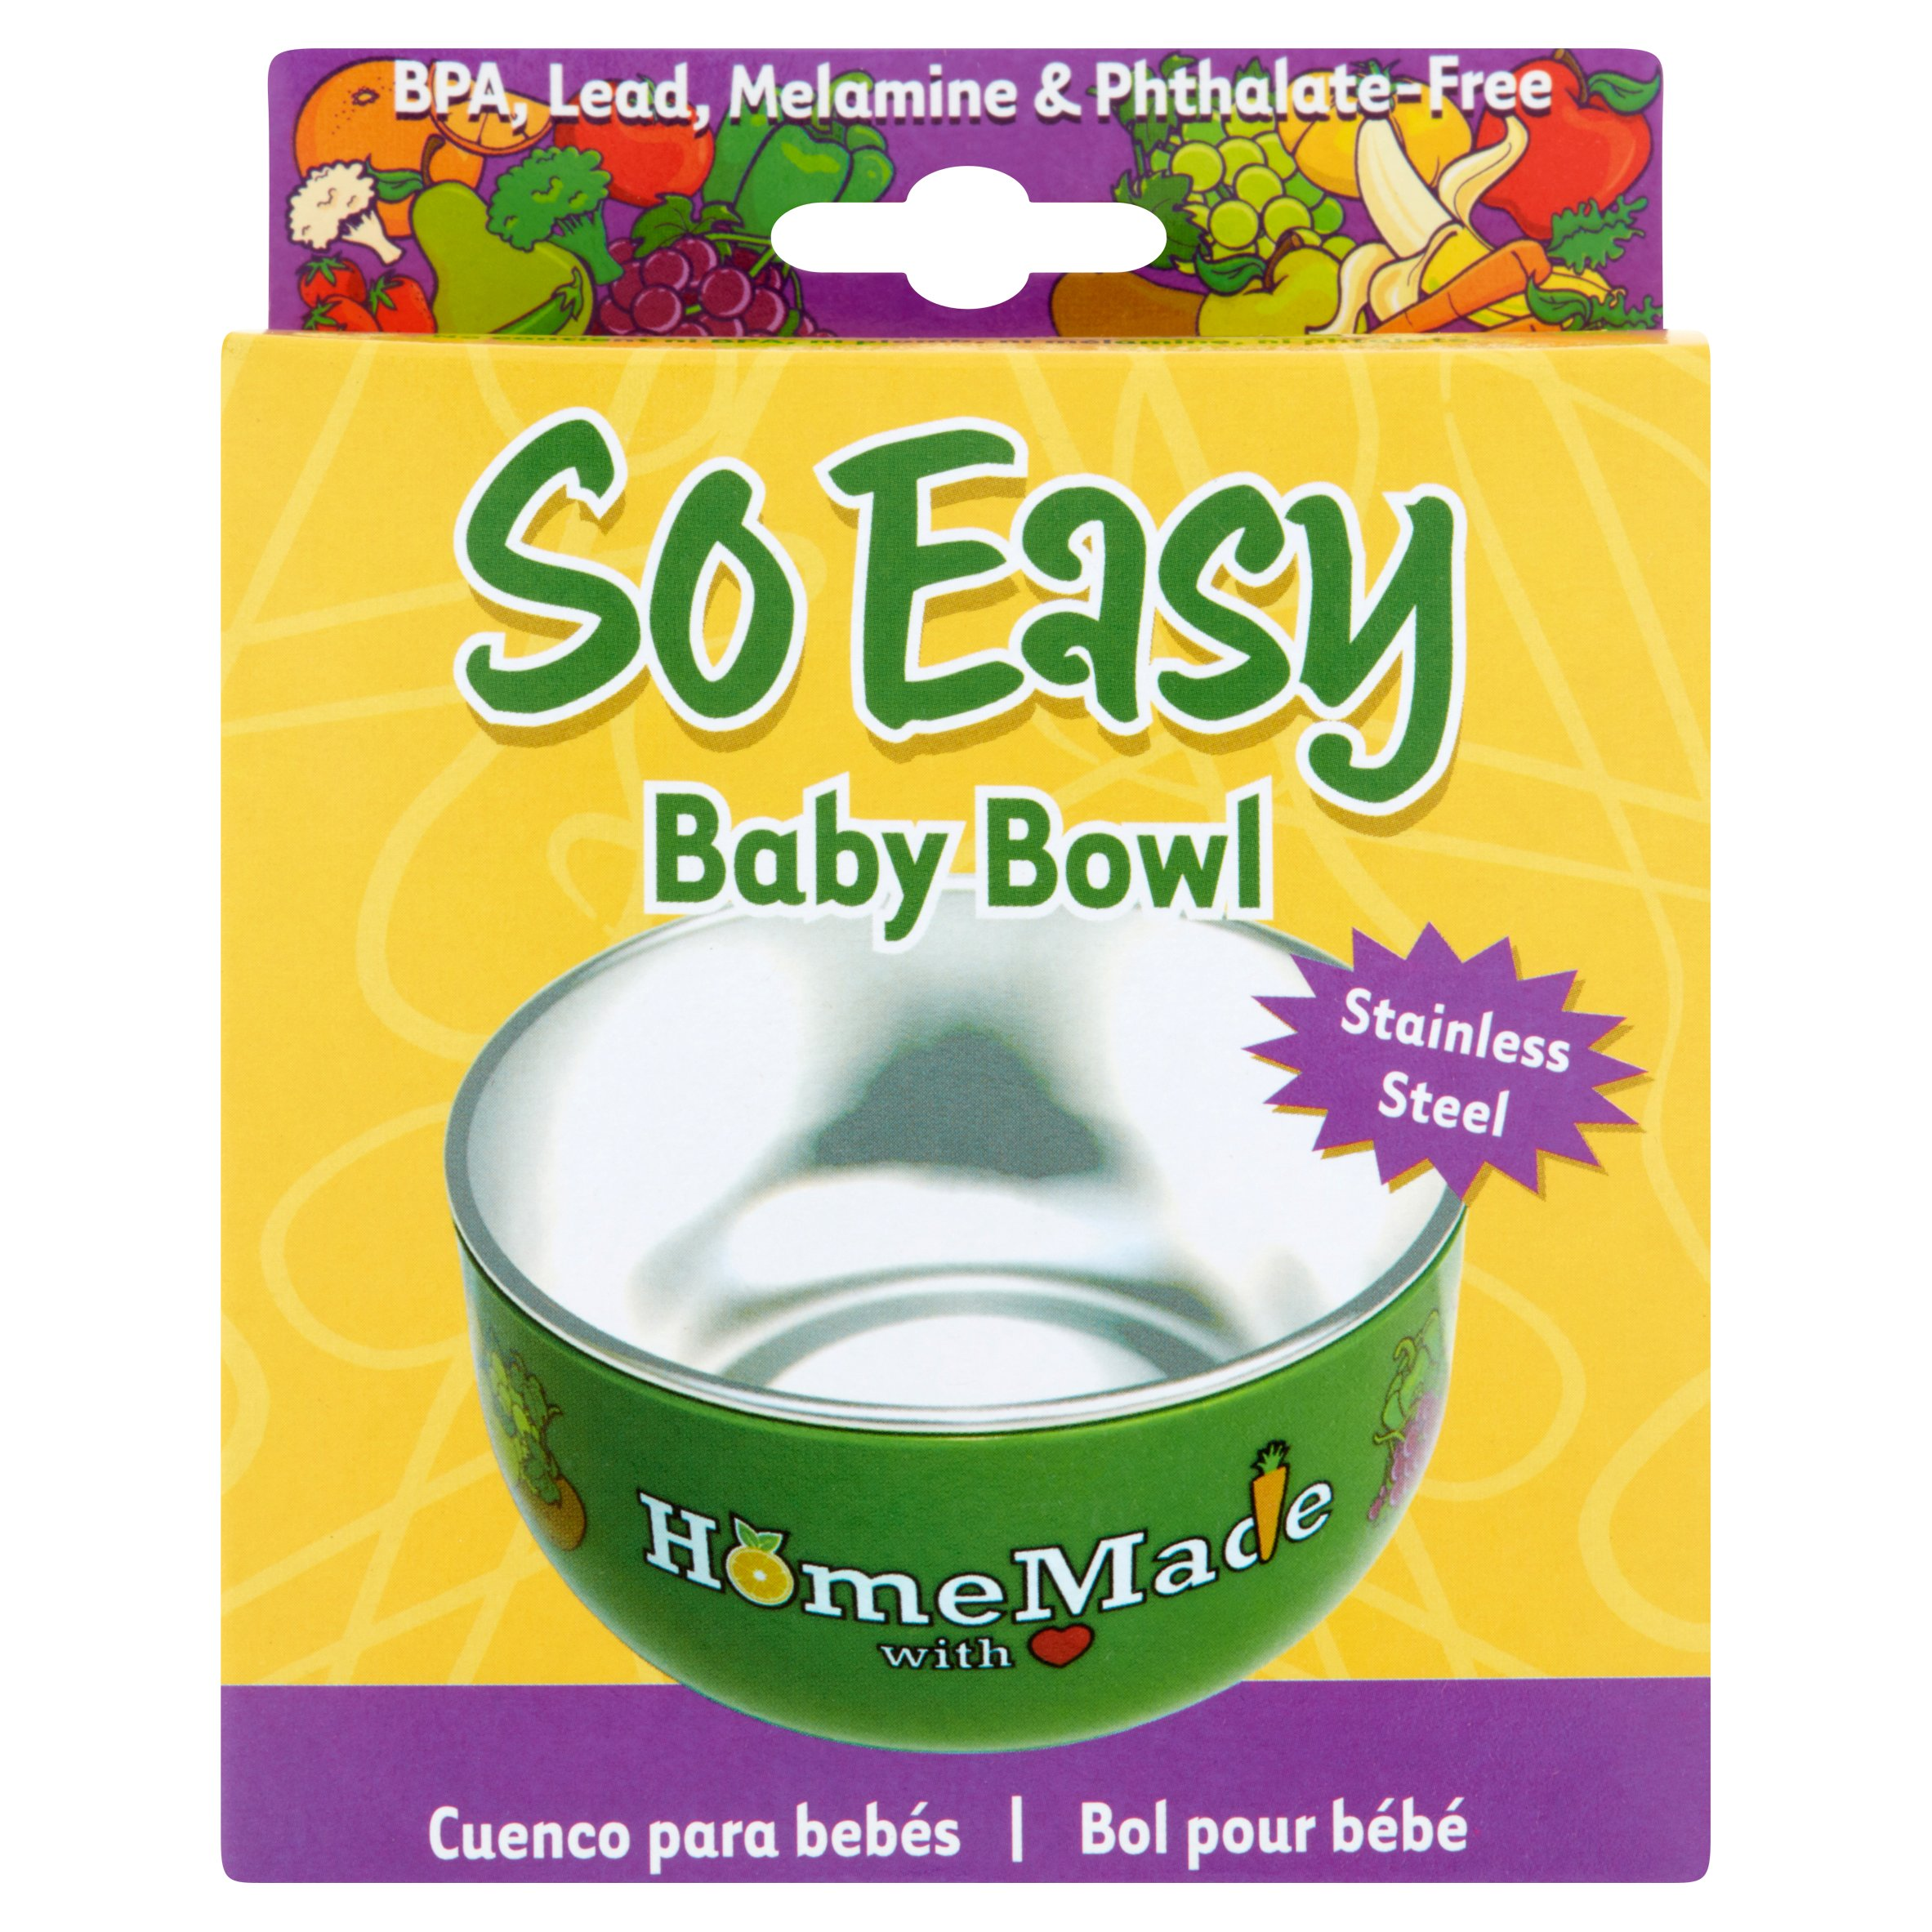 So Easy Stainless Steel Baby Bowl